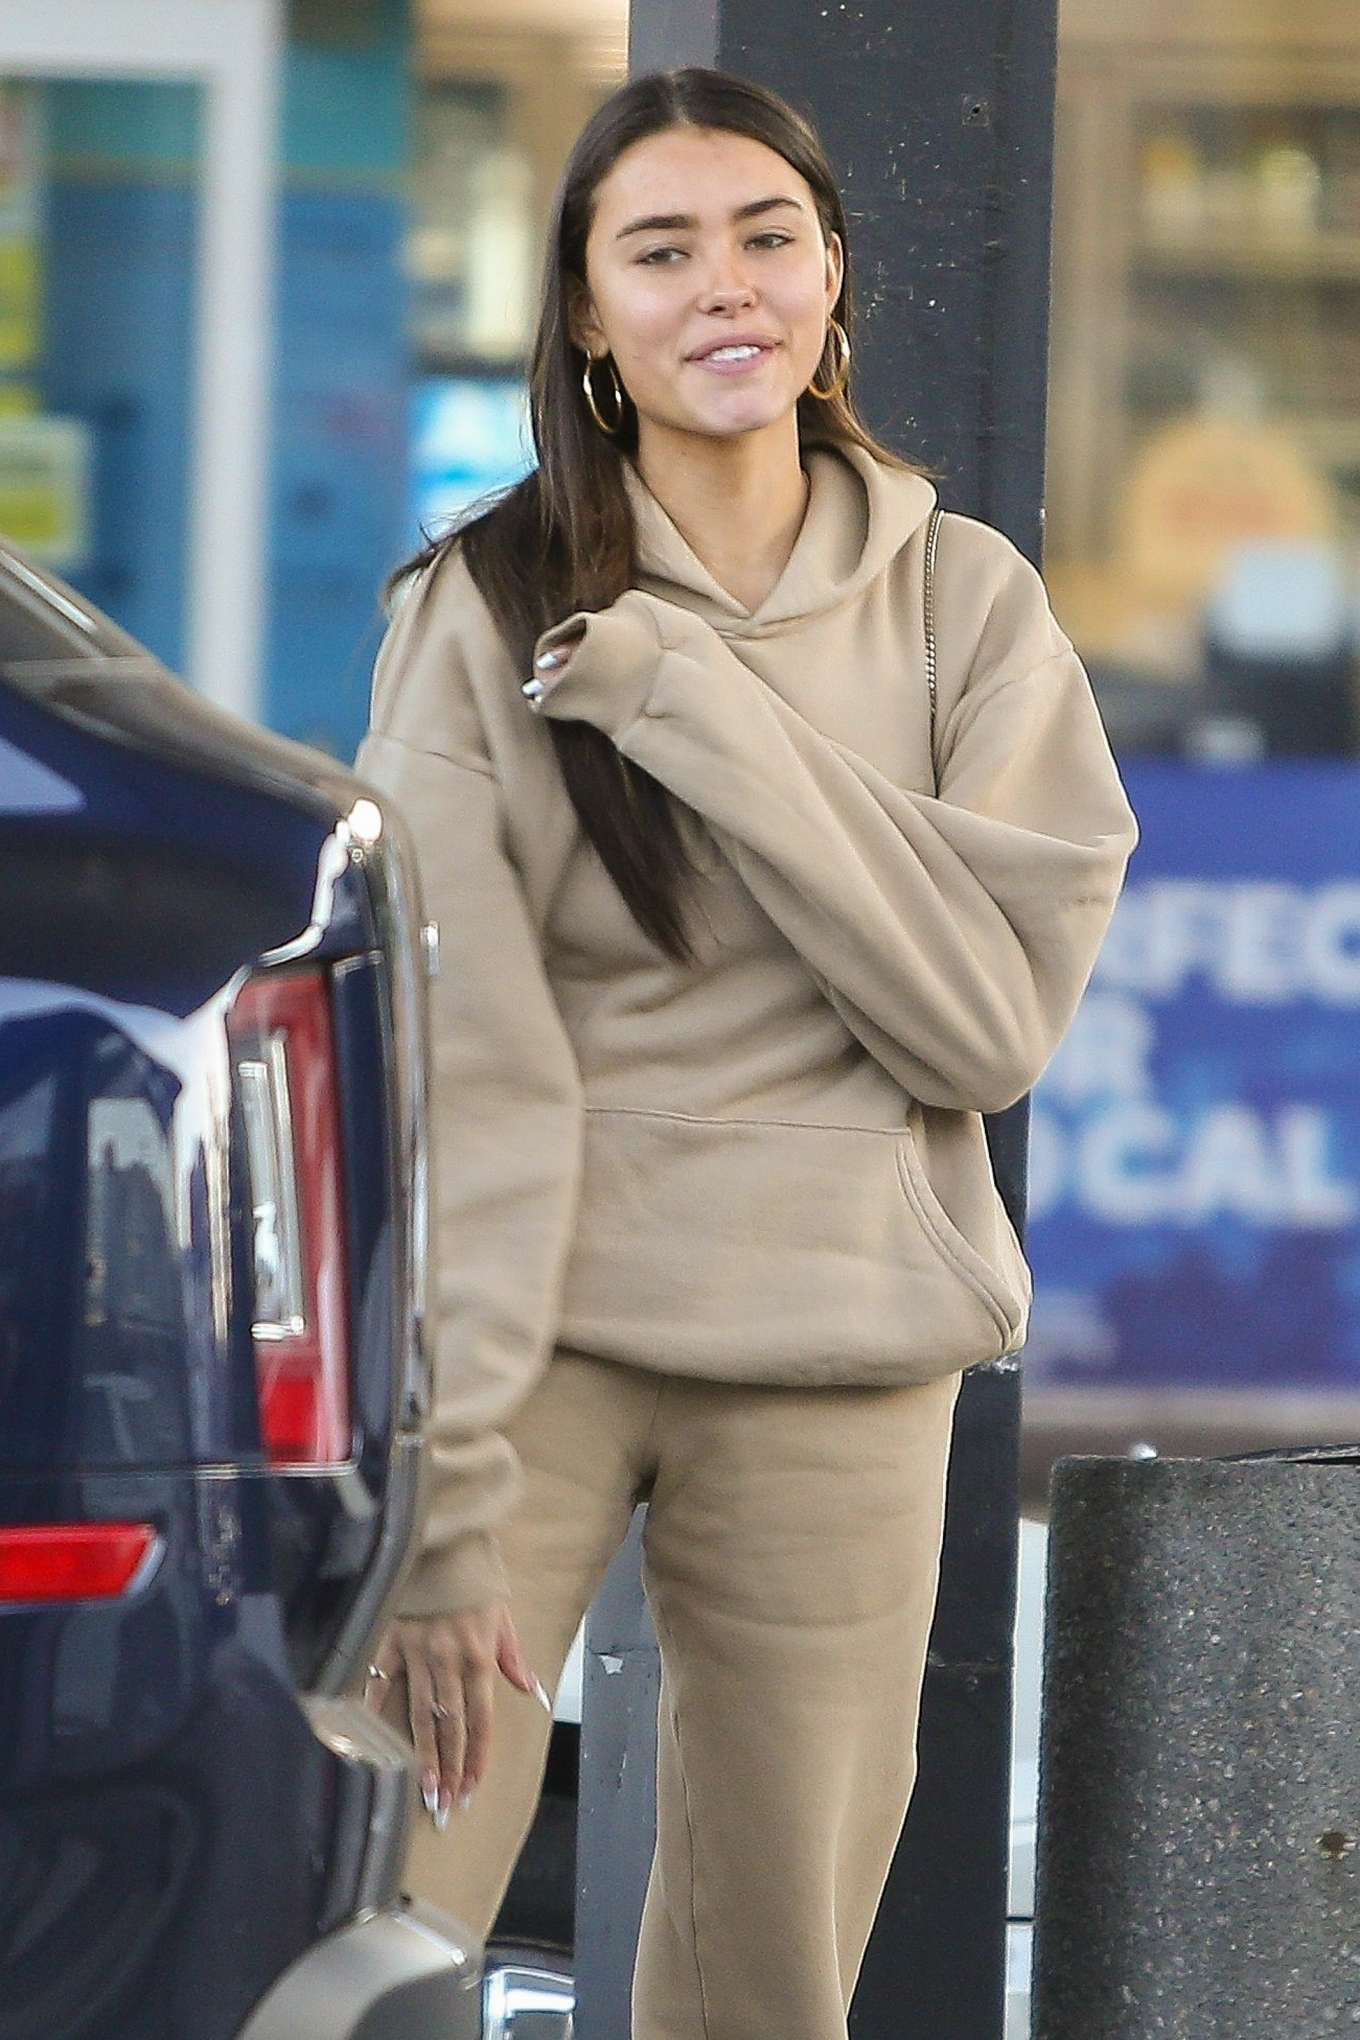 Madison Beer at a gas station in Los Angeles